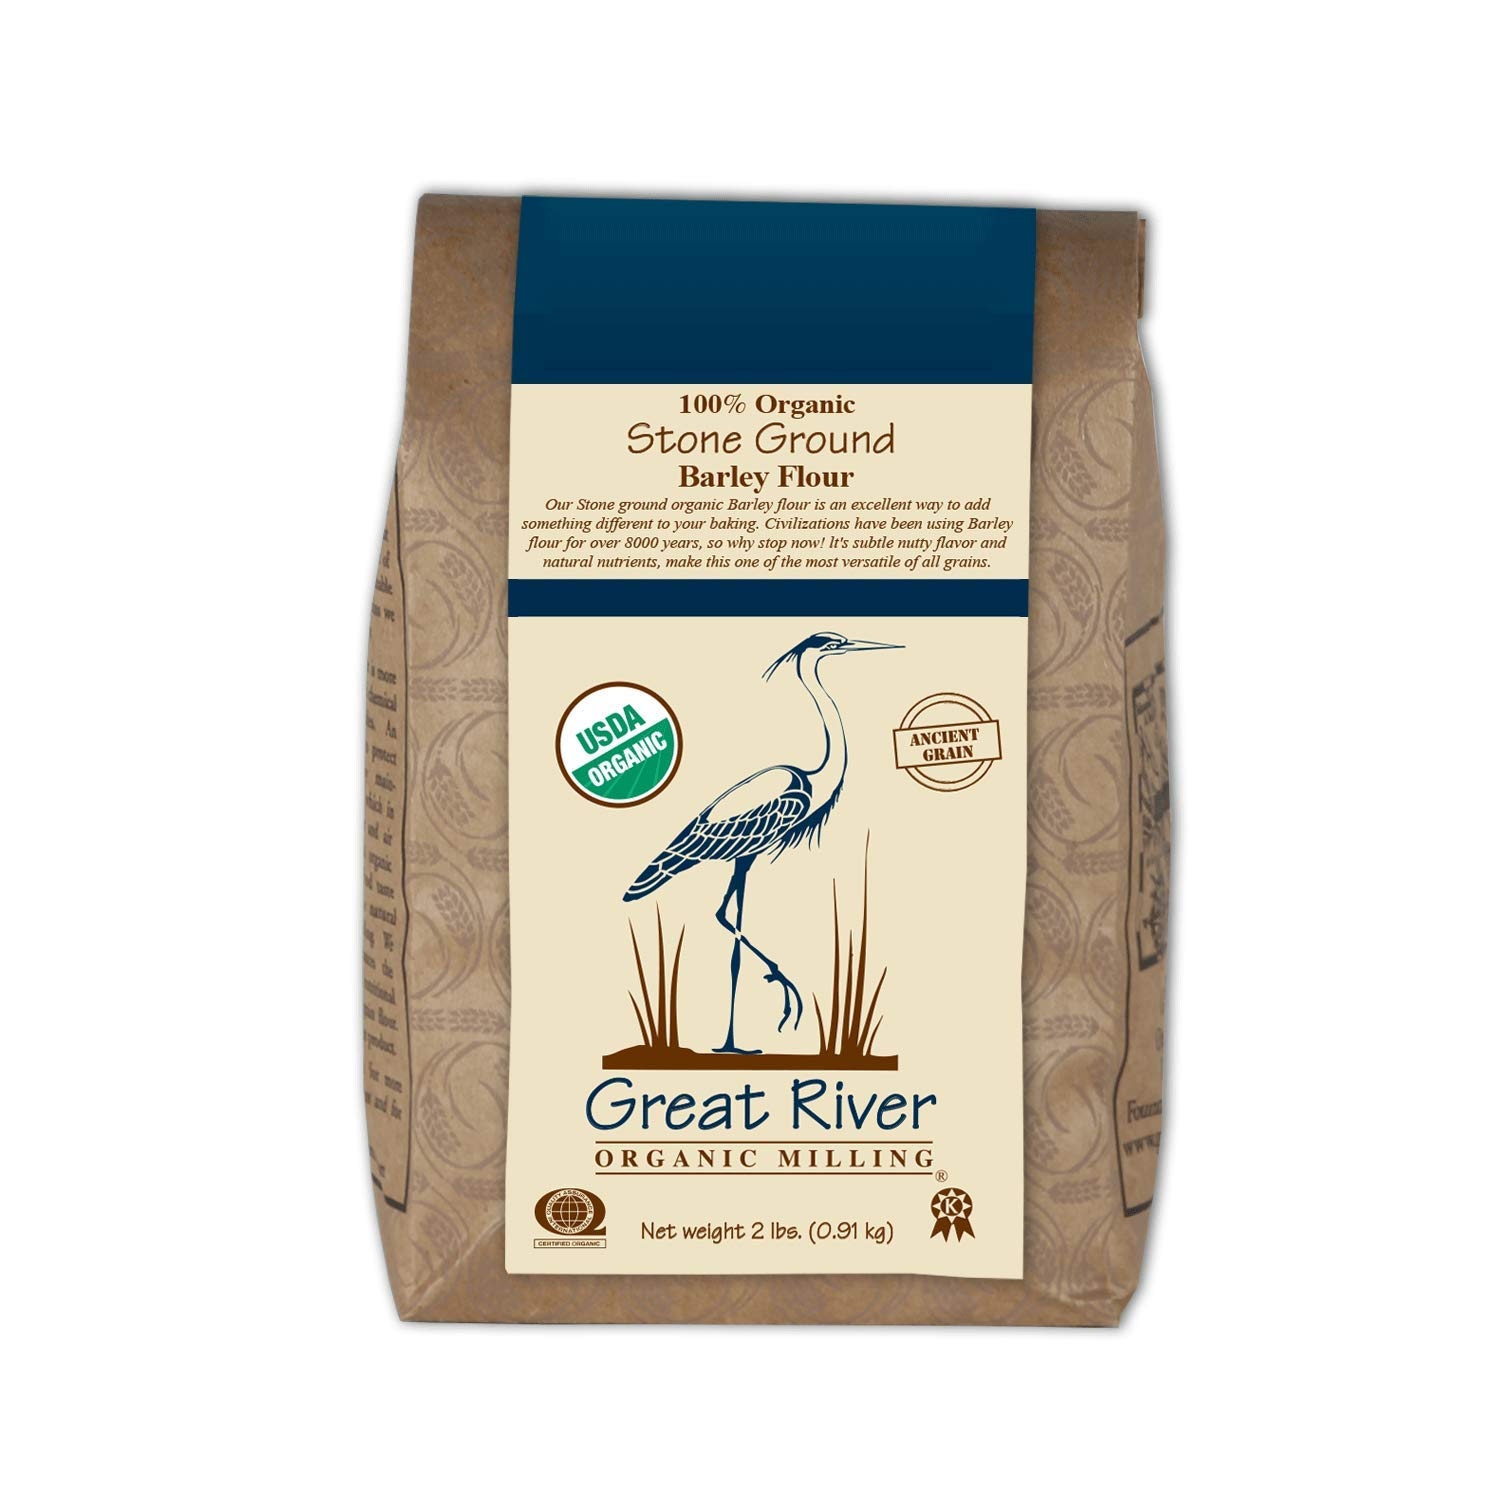 Great River Organic Milling Organic Barley Flour, 2 Pound(Pack of 4) by Great River Organic Milling (Image #4)